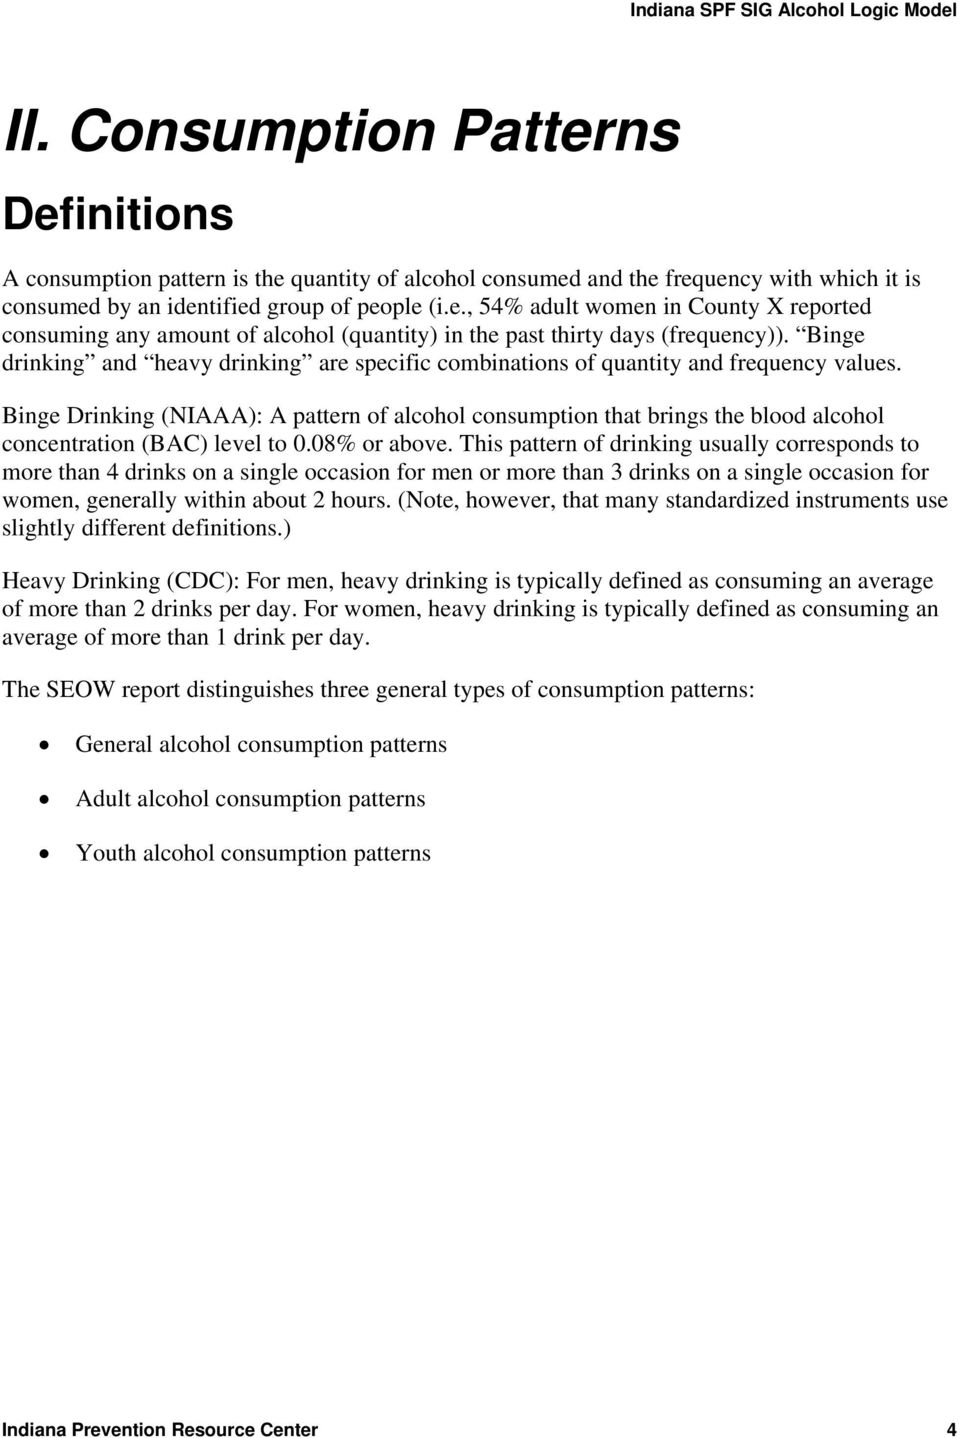 alcohol logic model. definitions and data sources - pdf